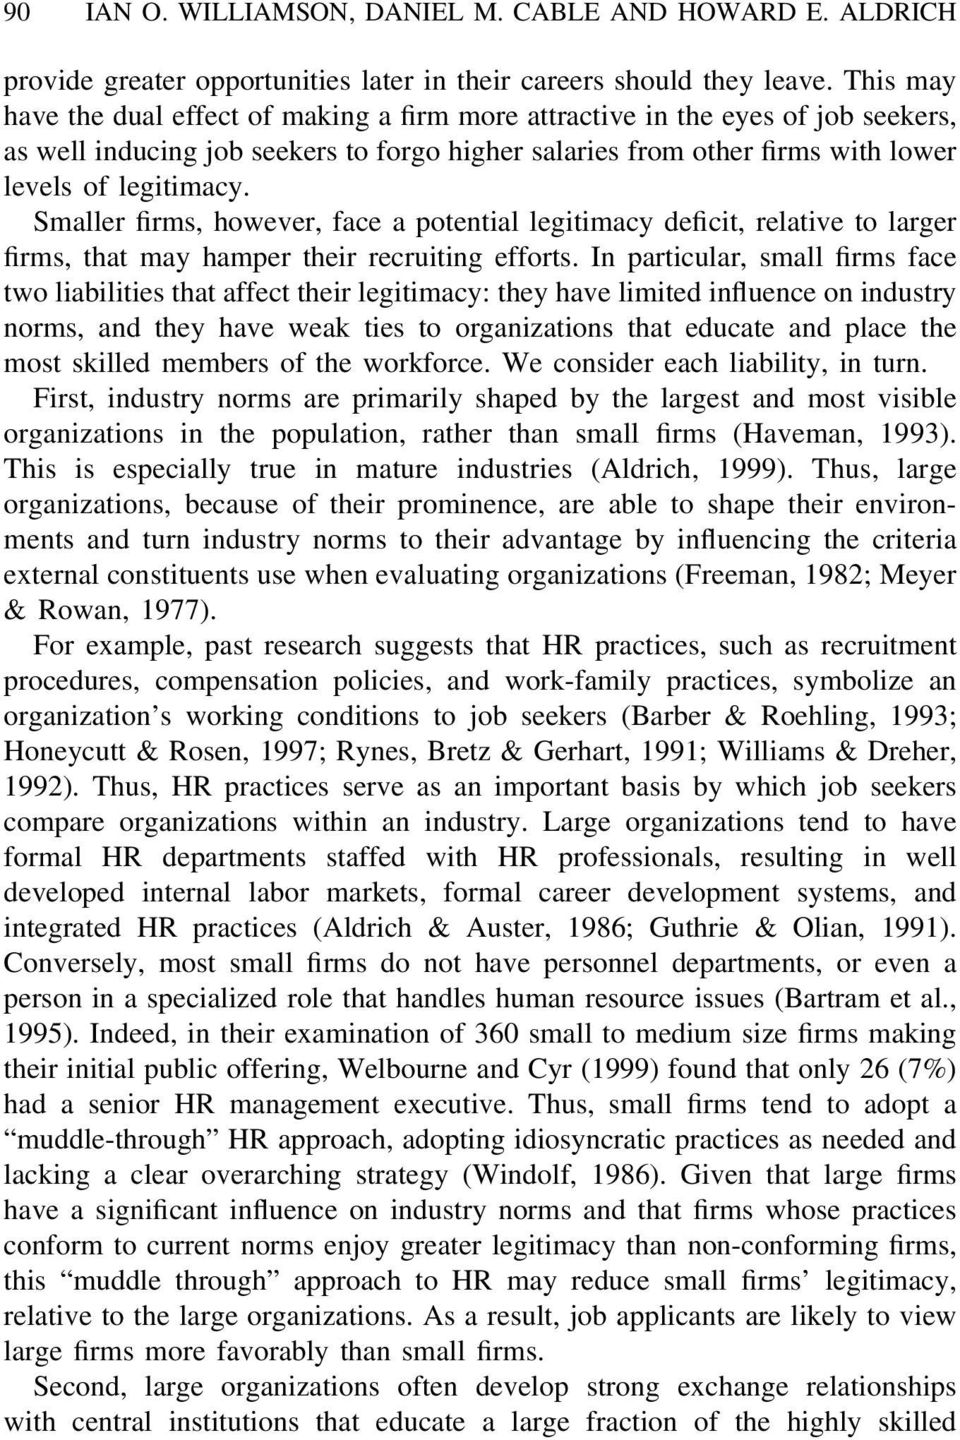 Smaller firms, however, face a potential legitimacy deficit, relative to larger firms, that may hamper their recruiting efforts.